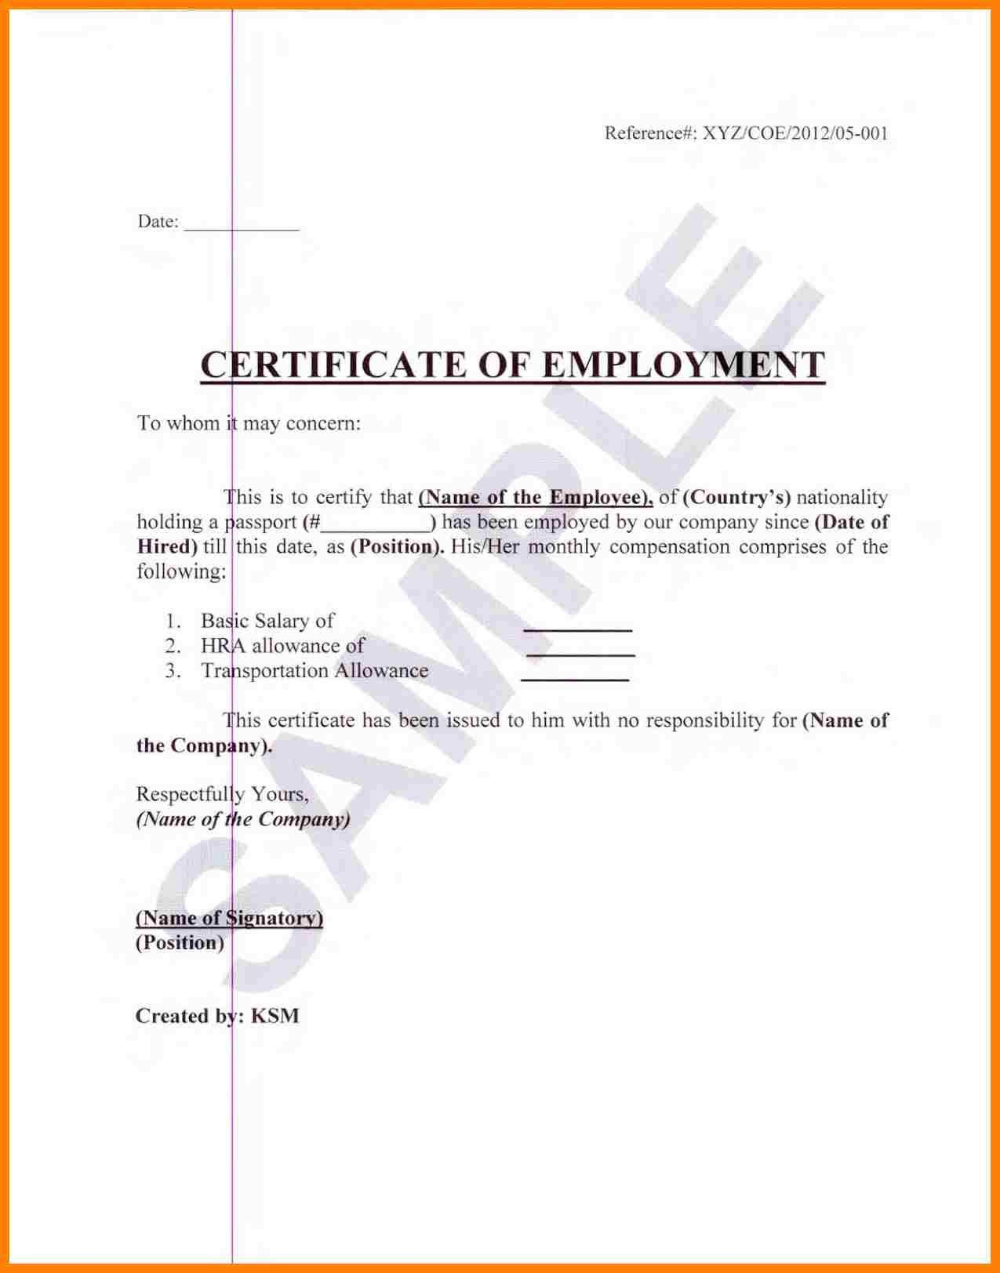 Sample Certification Employment Certificate Tugon Med